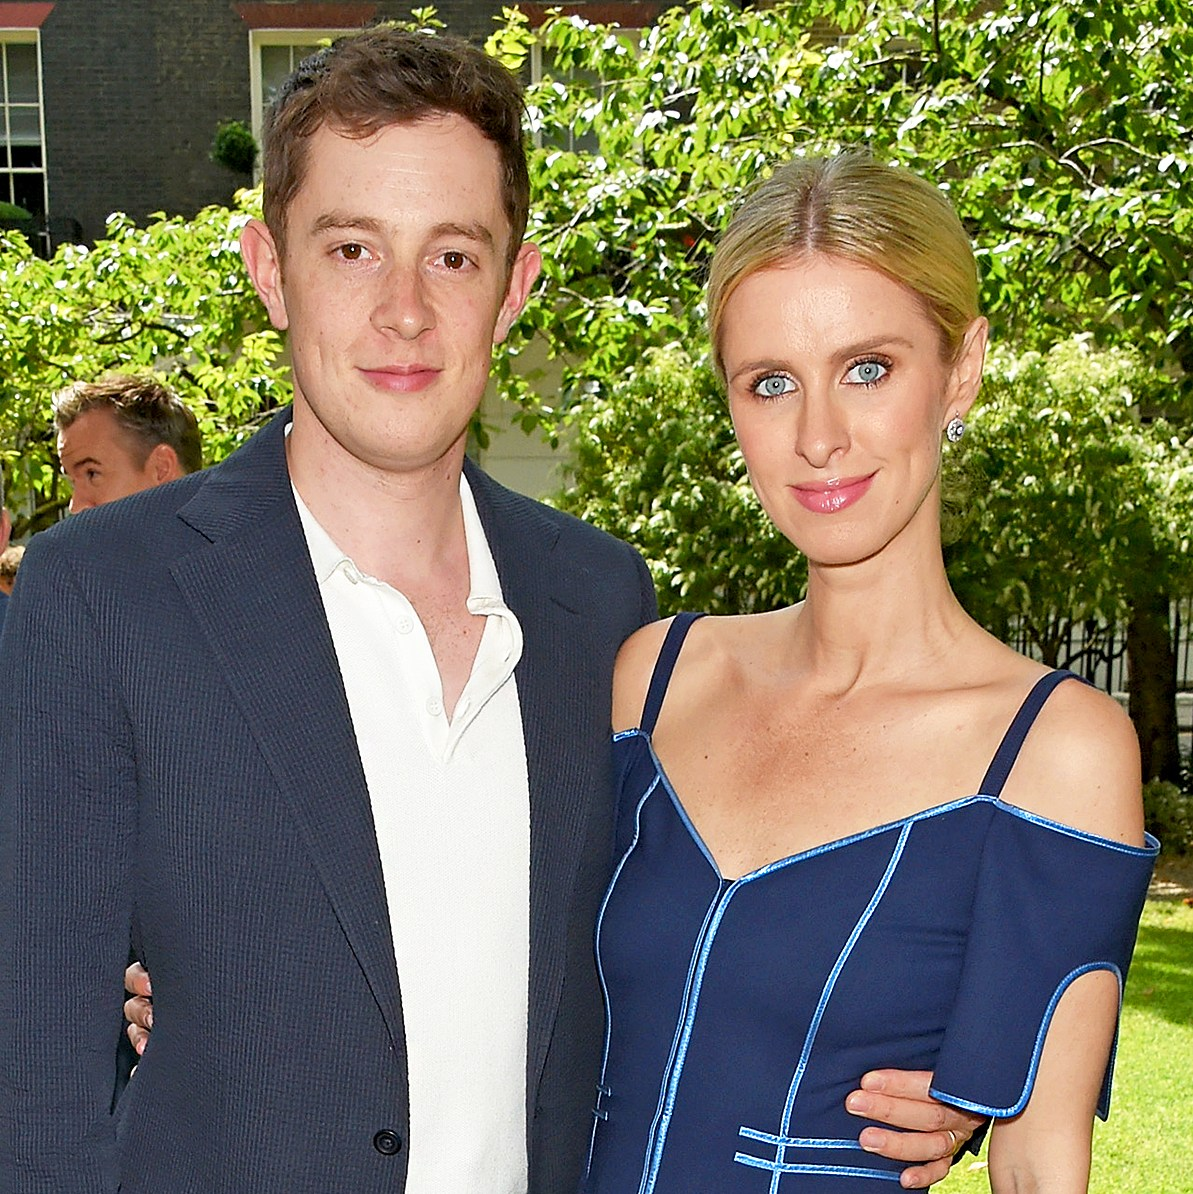 James Rothschild and Nicky Hilton attend Piers Adam and Sophie Vanacore's wedding in at St. John's Church on July 7, 2017 in London, England.